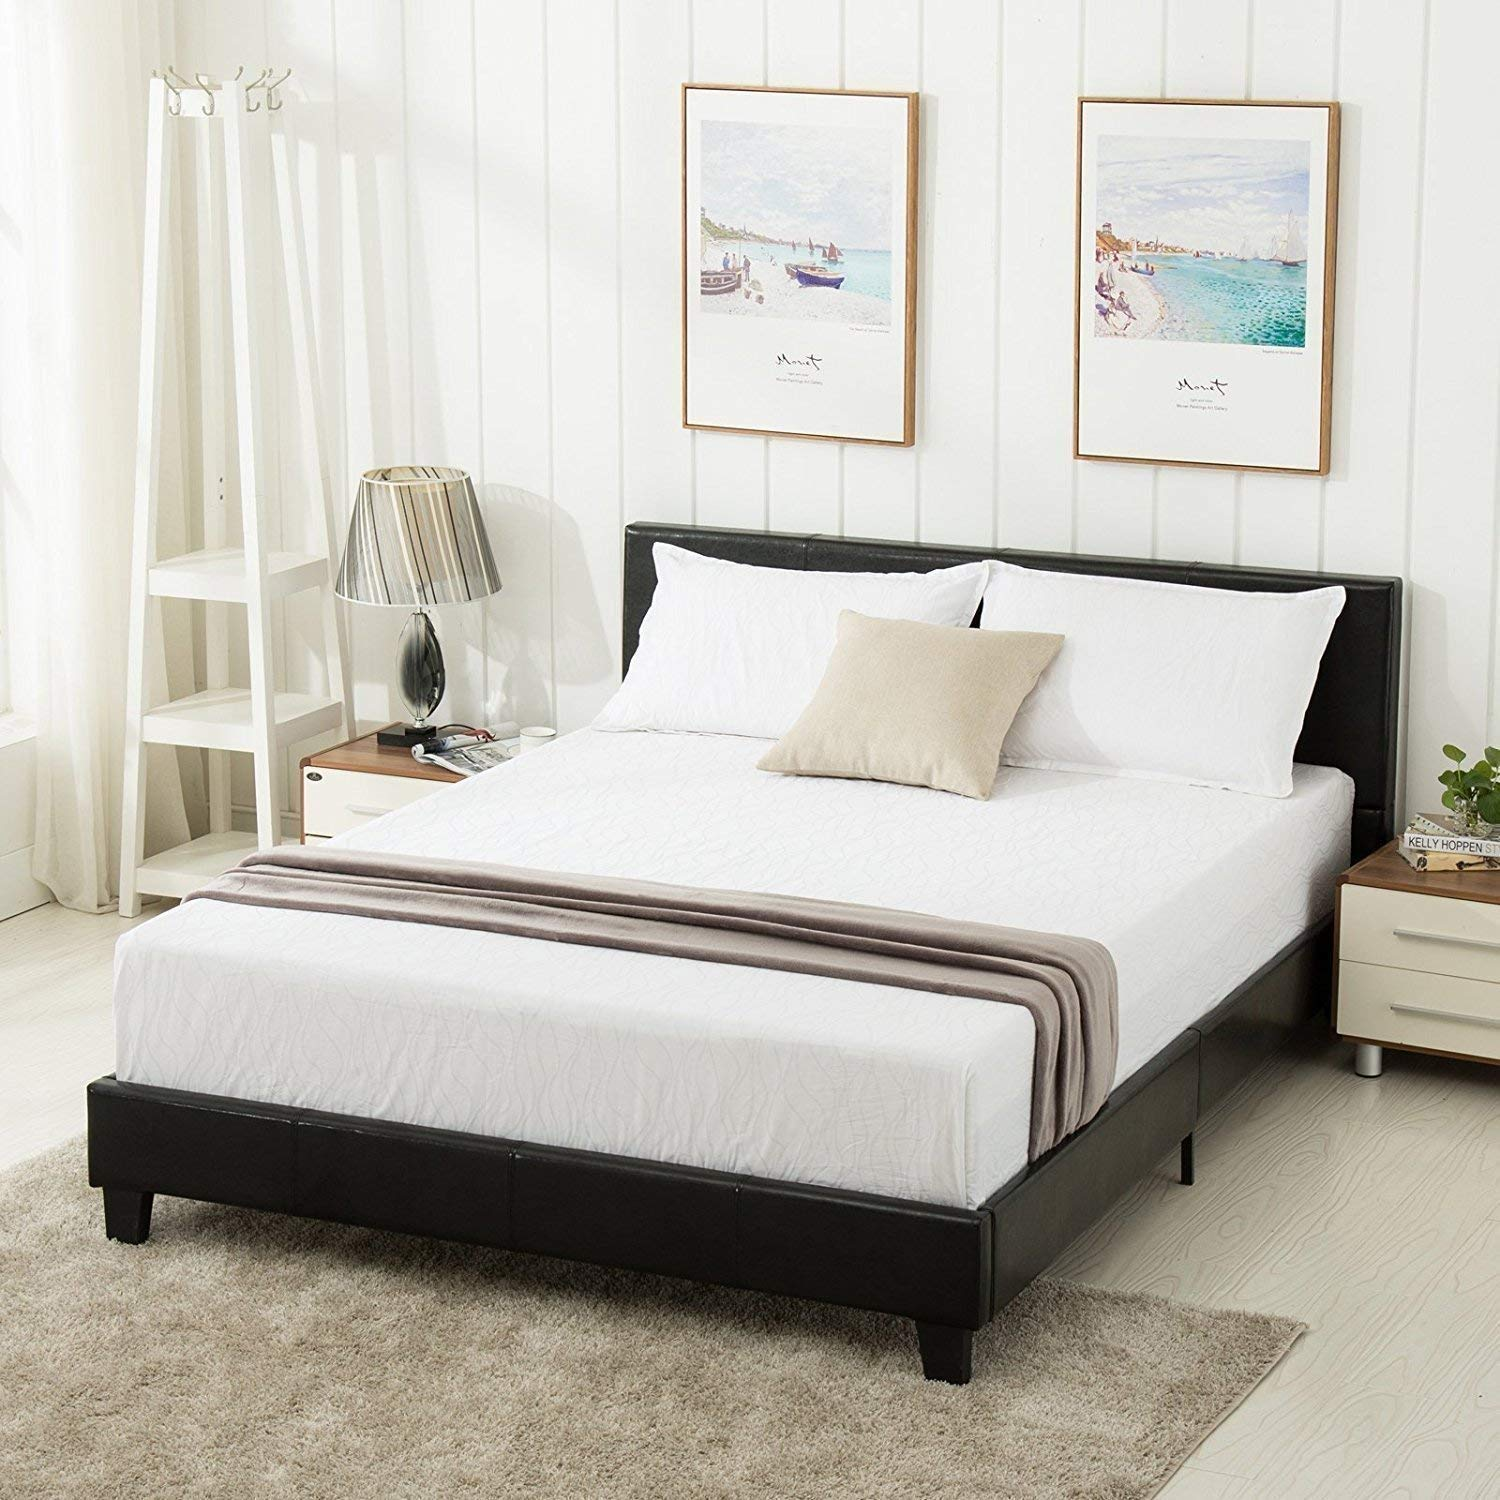 Queen Bed.Mecor Queen Bed Frame Faux Leather Upholstered Bonded Platform Bed Panel Bed With Headboard No Box Spring Needed For Adults Teens